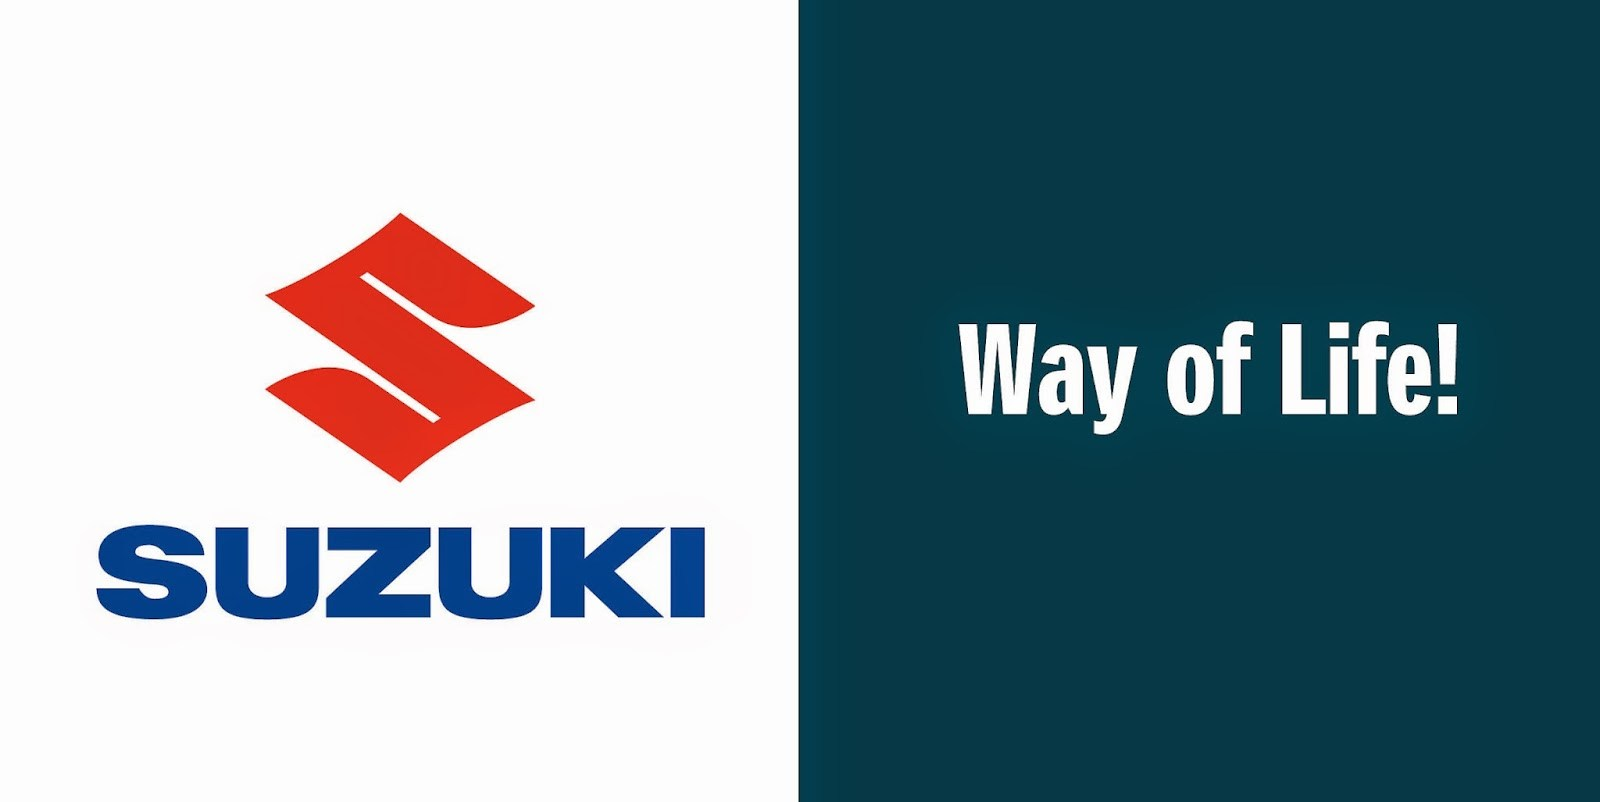 https://assets.roar.media/assets/4q4rH1ec3TNLJVaC_Suzuki-Way-of-Life-logo.jpg